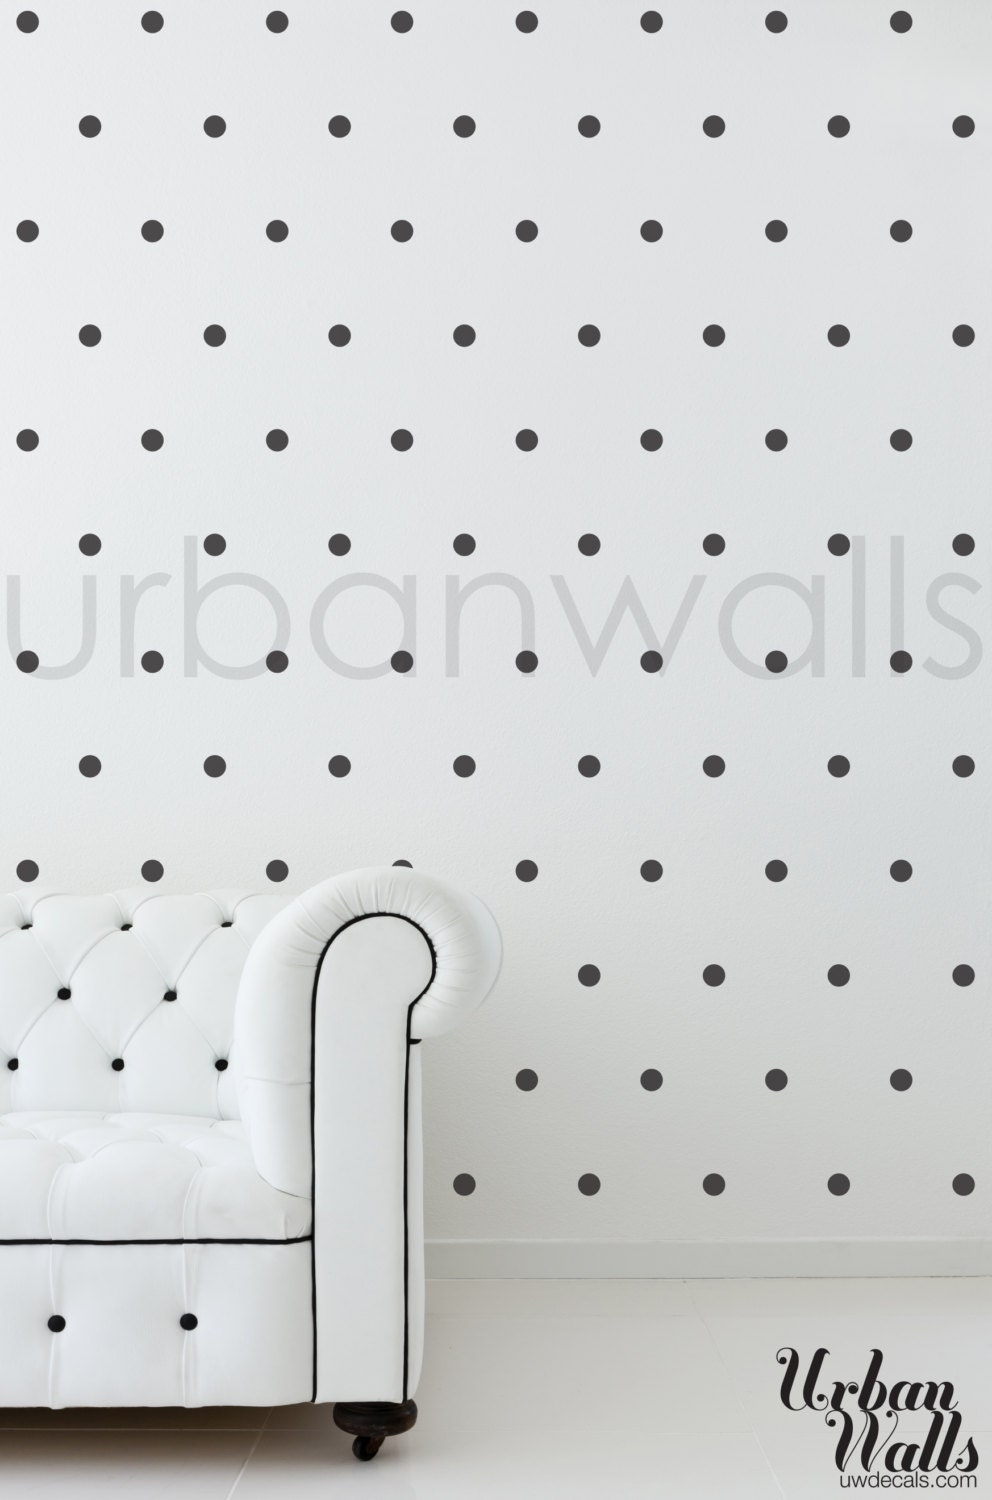 vinyl wall sticker decal art small polka dots. Black Bedroom Furniture Sets. Home Design Ideas